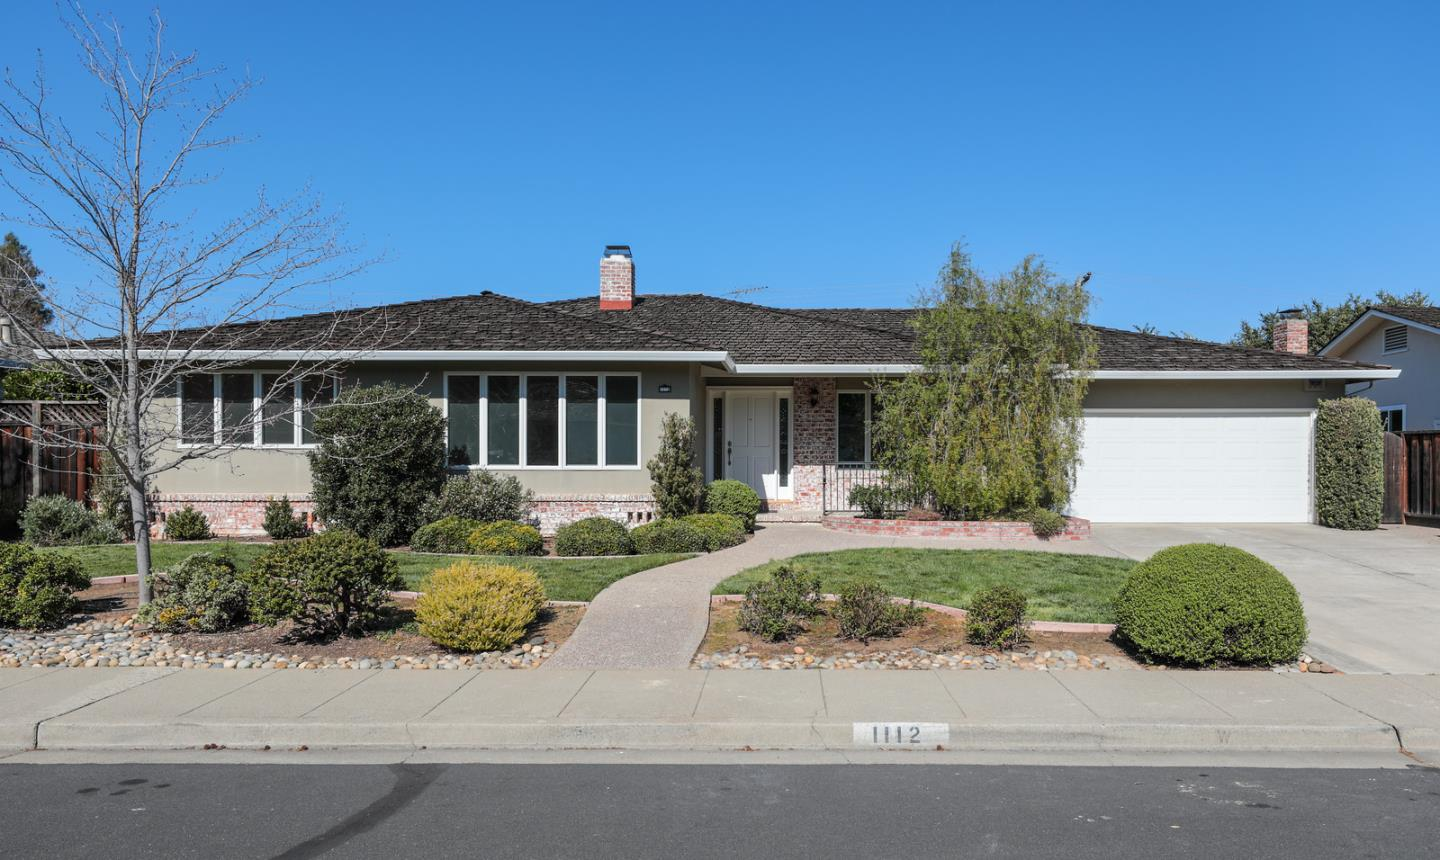 Single Family Home for Sale at 1112 Lincoln Drive 1112 Lincoln Drive Mountain View, California 94040 United States